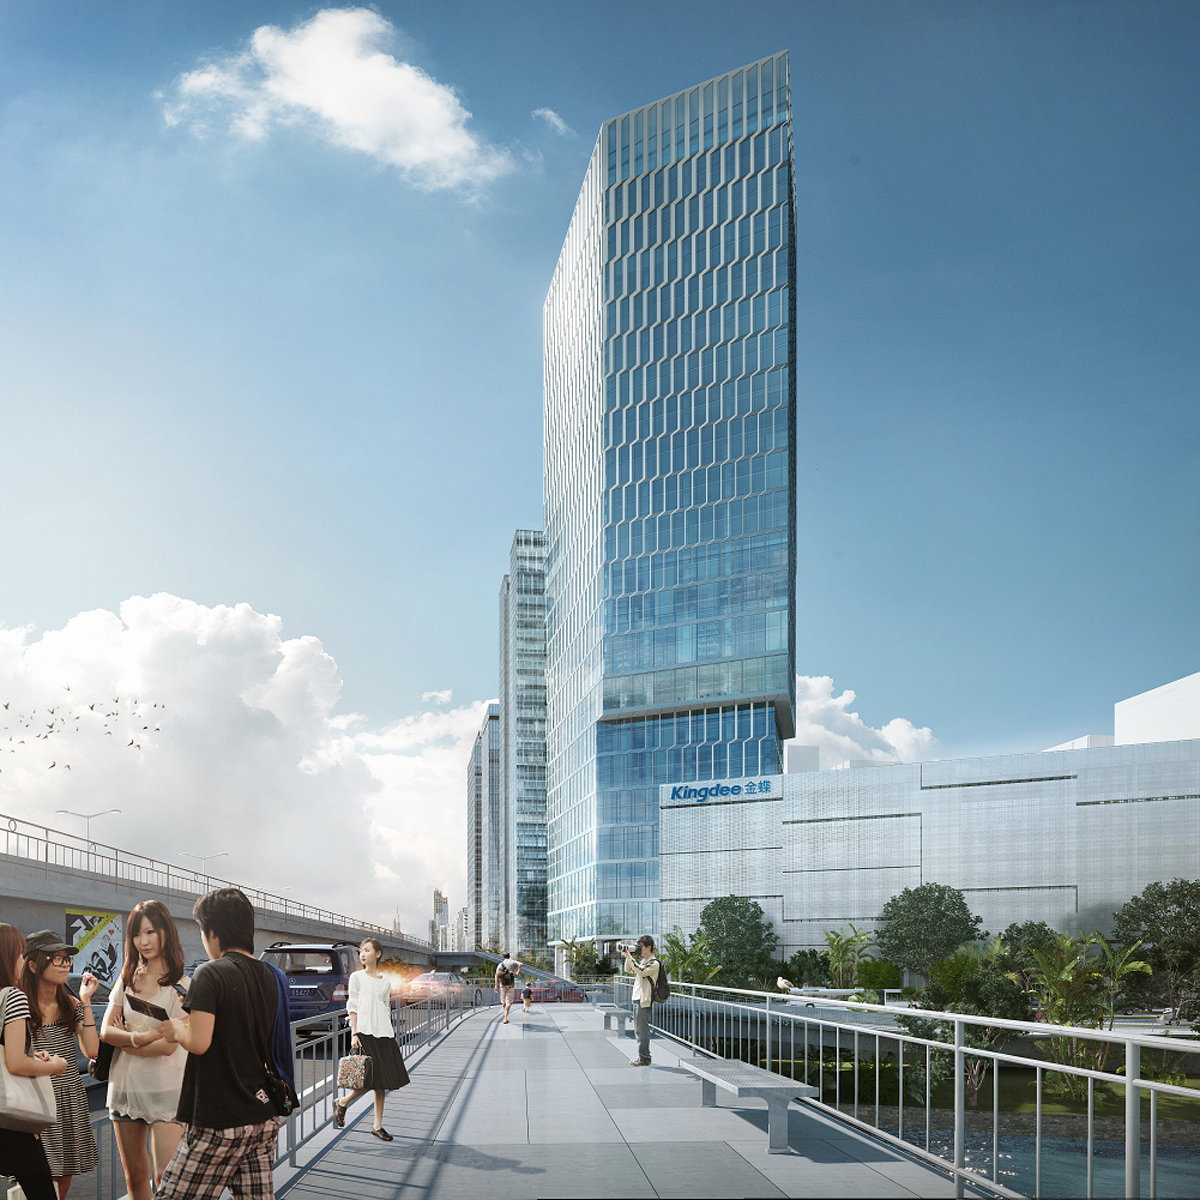 HENN Wins 1st Prize in Competition for Kingdee Tower in Shenzhen